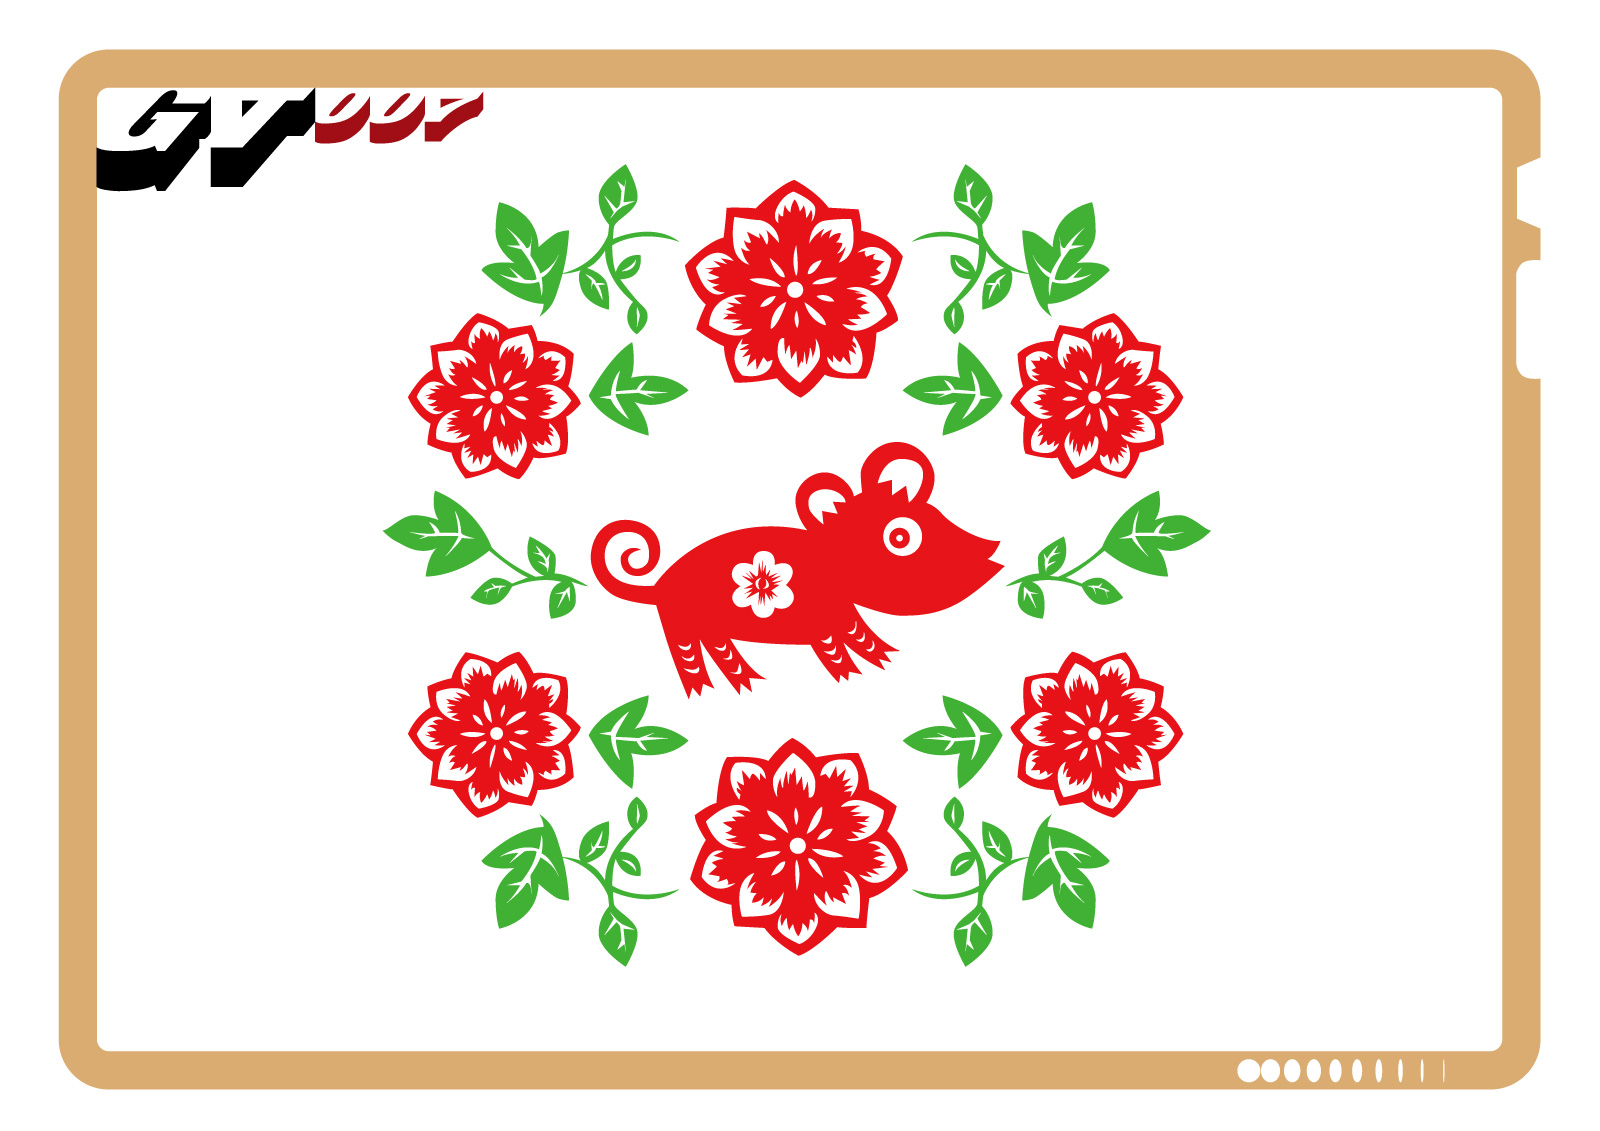 chinesefontdesign.com 2017 03 21 16 58 12 Chinese Spring Festival special stickers pattern – China Illustrations Vectors AI ESP  #.2 Paper cut art Chinese paper cut art ai Chinese paper cut art